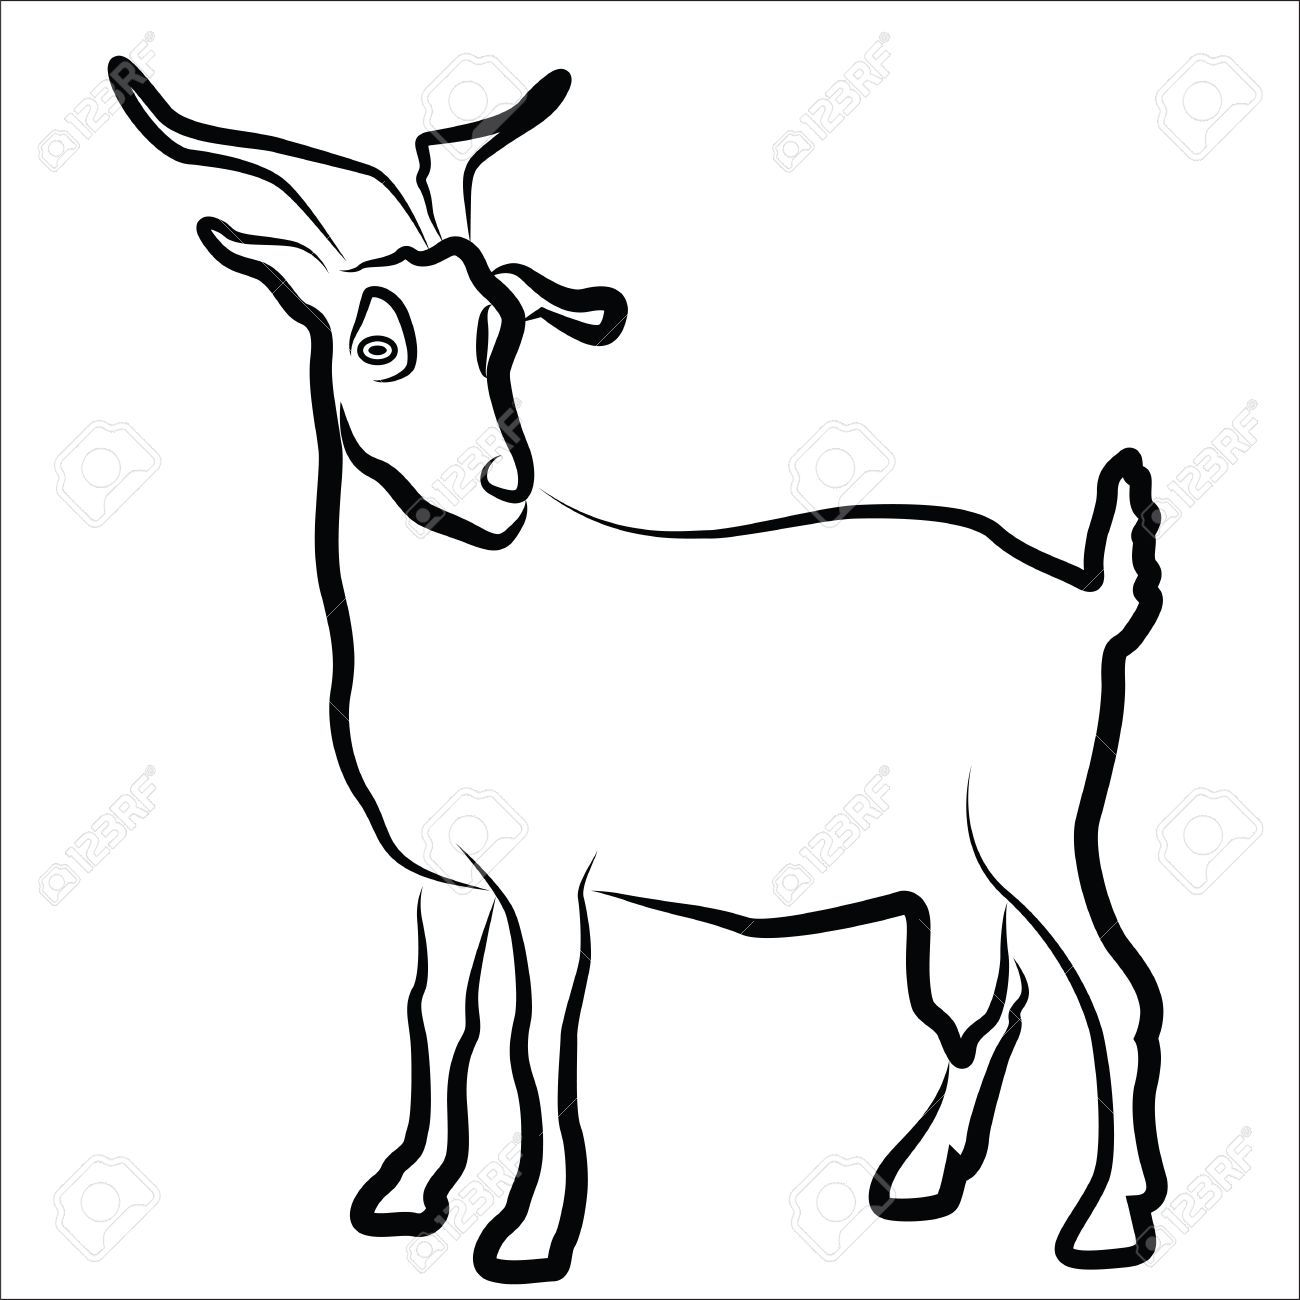 1300x1300 Goat Silhouette Isolated On White Royalty Free Cliparts, Vectors